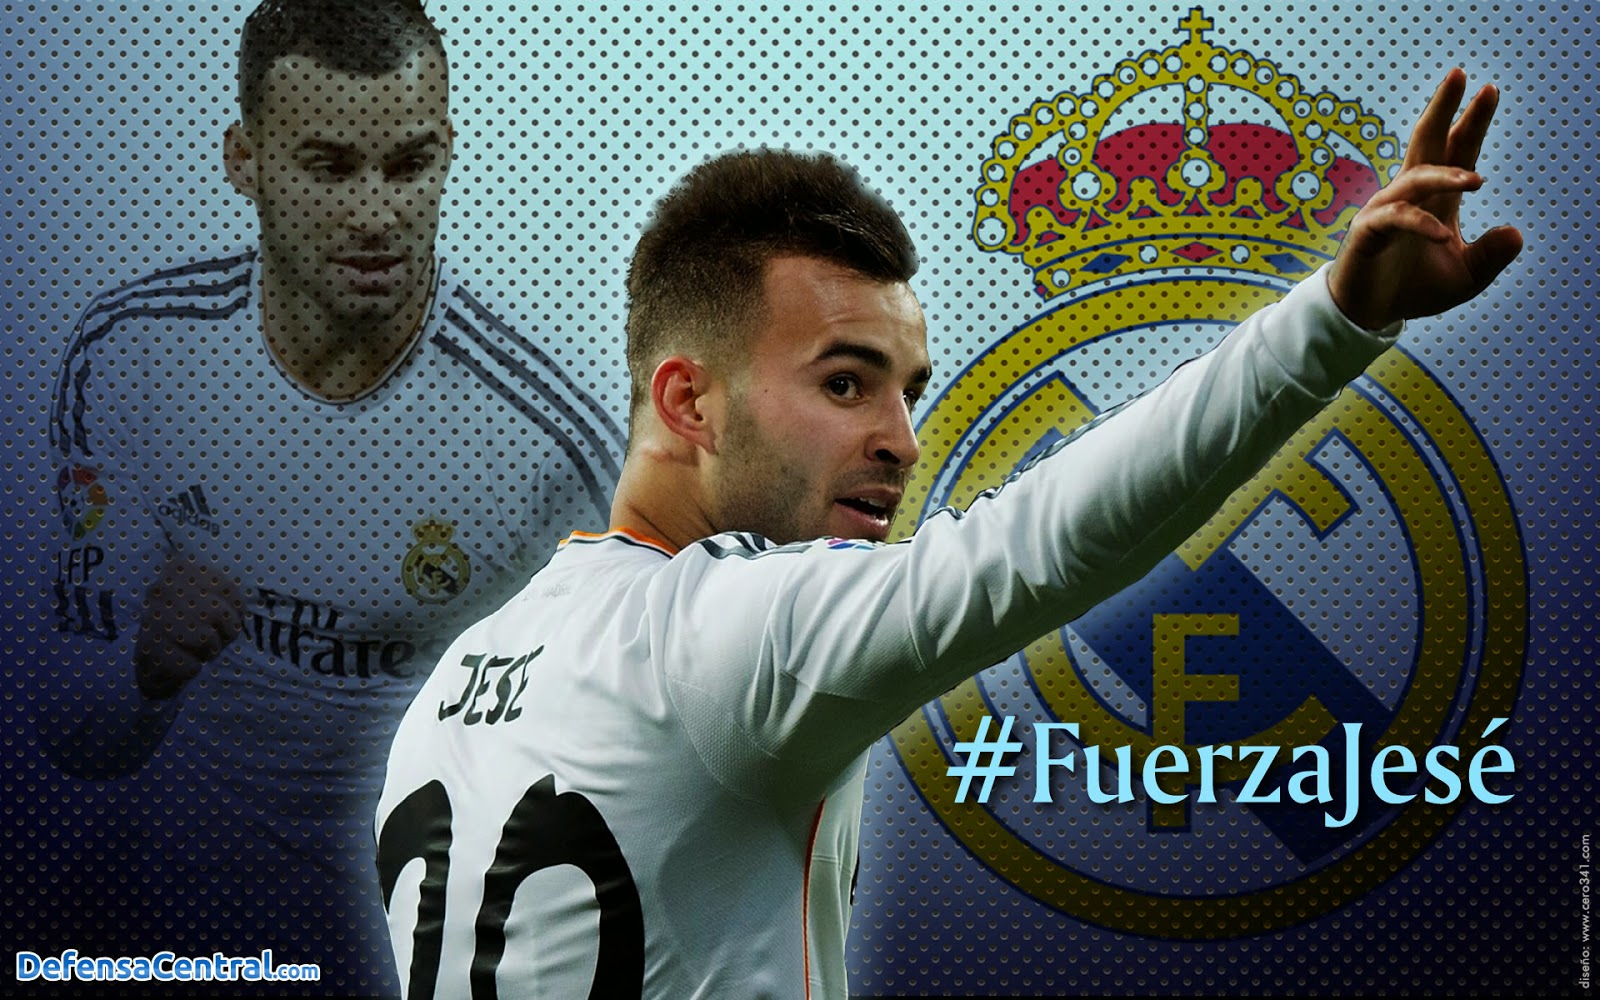 Jese Real Madrid Wallpaper HD 2014